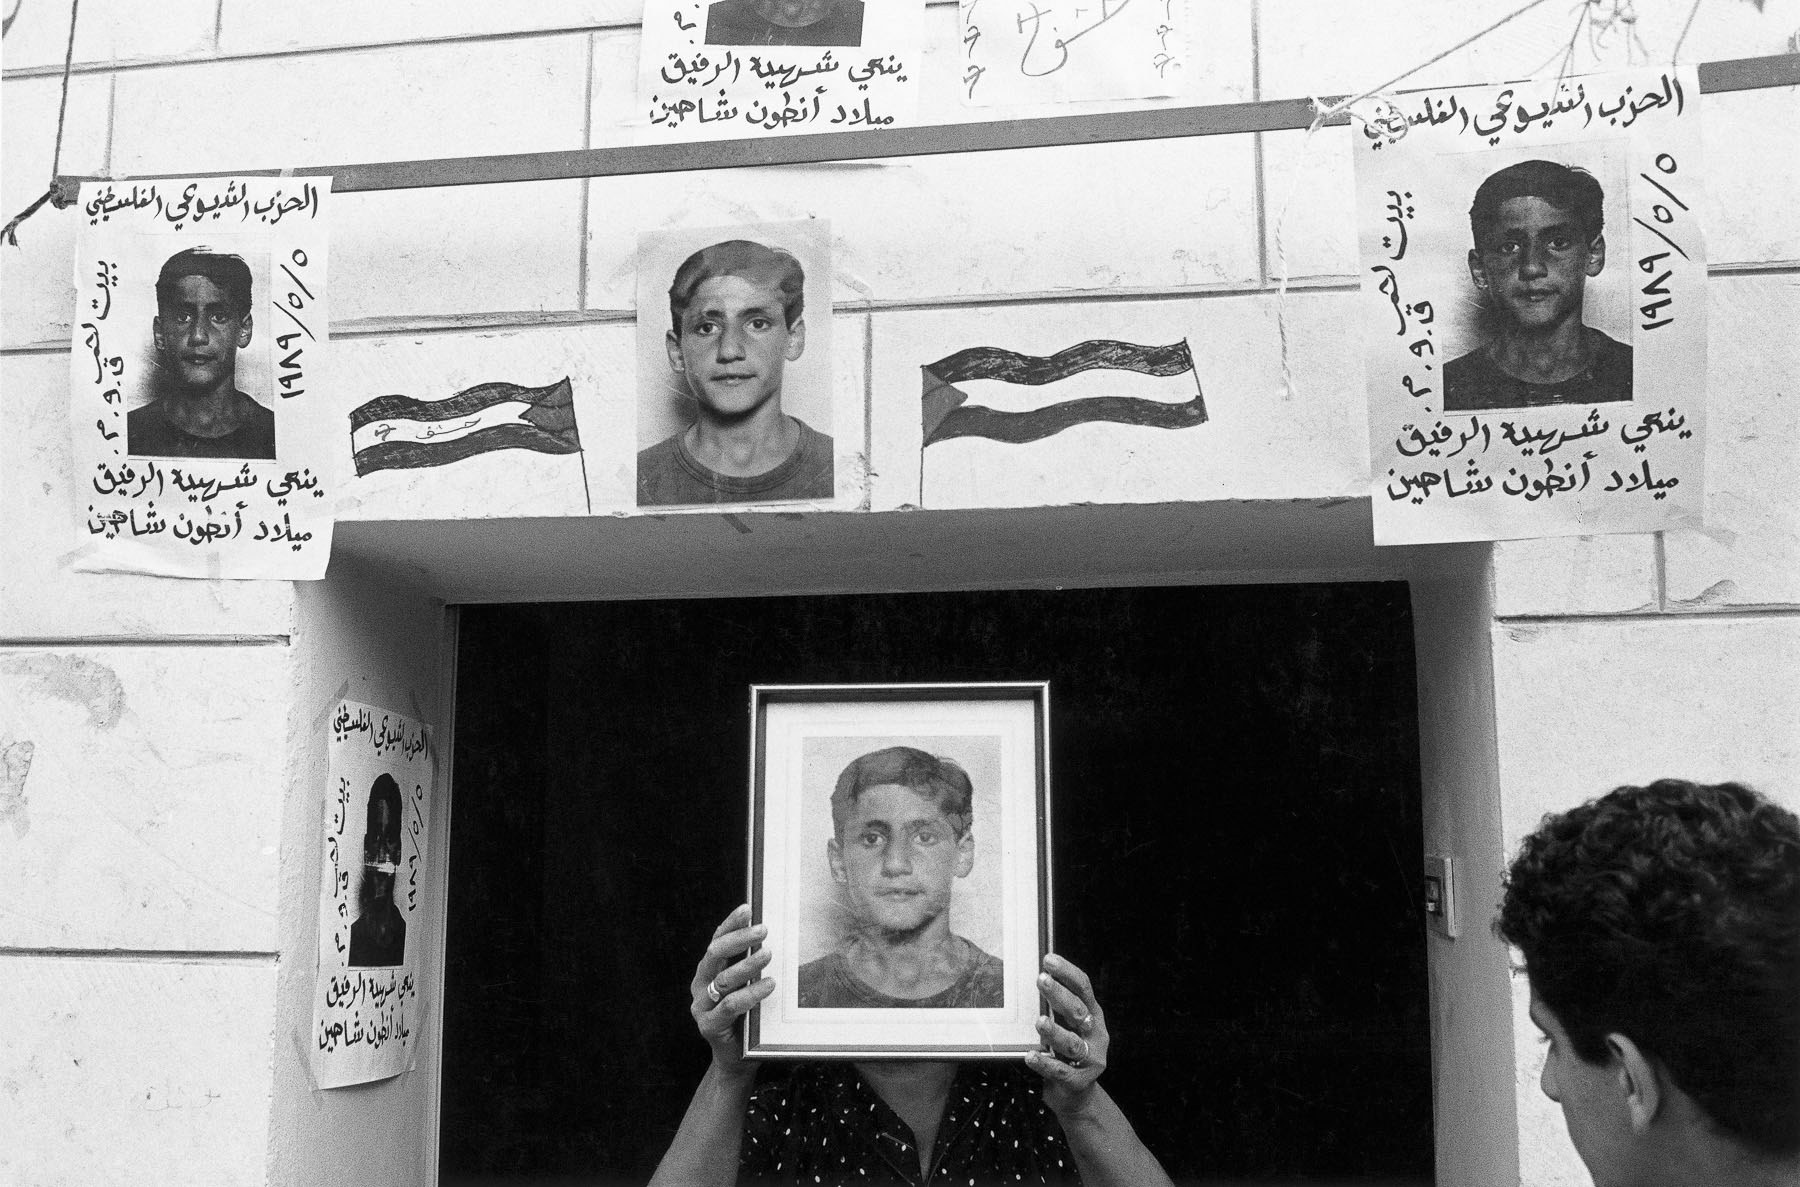 Milad's funerals, a 10-year-old Palestinian child killed by the Israelian army in June 1989